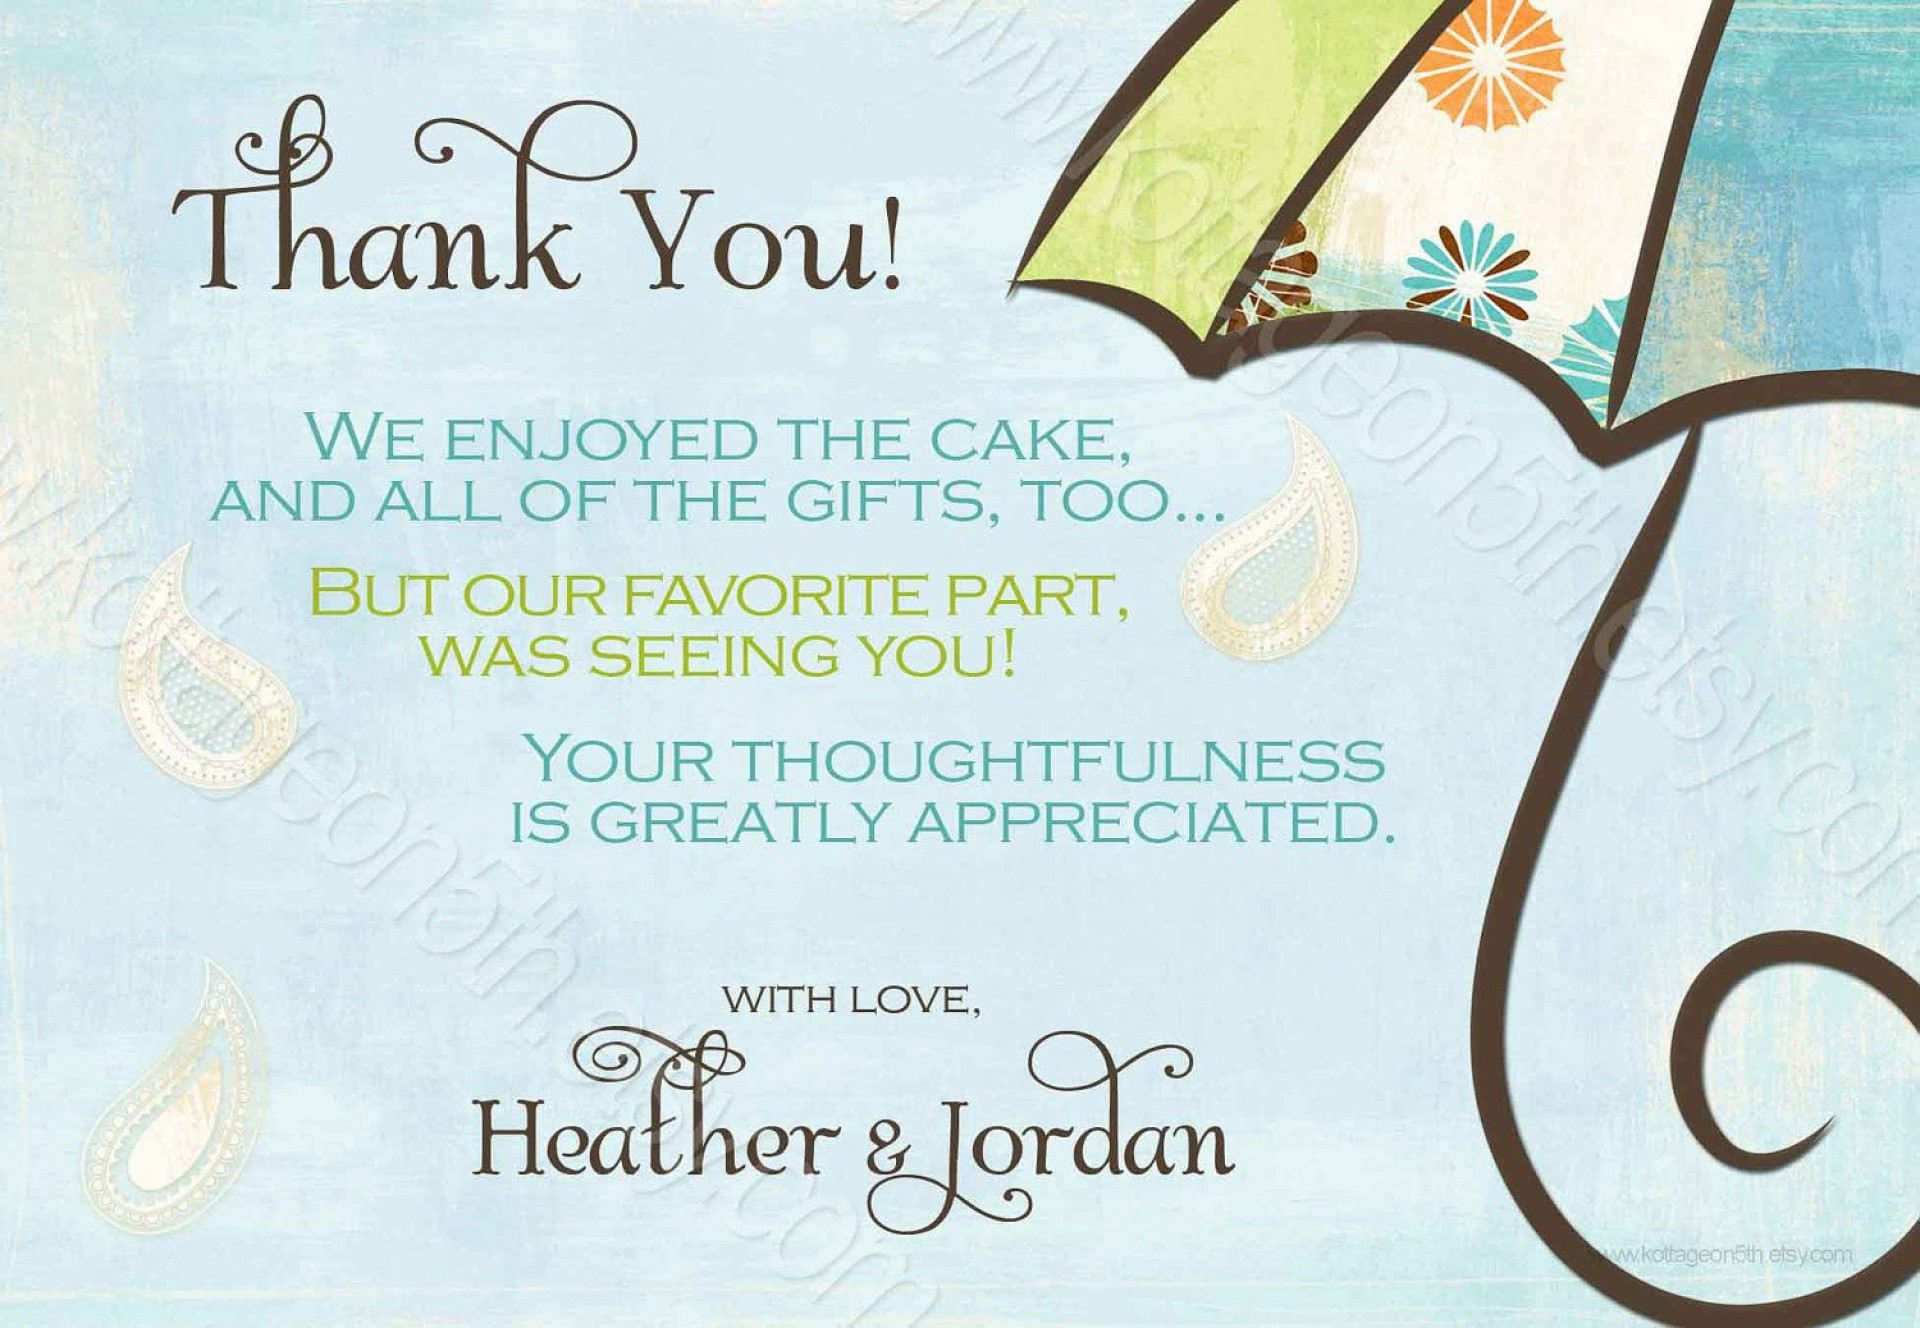 008 Wonderful Thank You Note Template For Baby Shower Gift Concept  Card Letter Sample1920